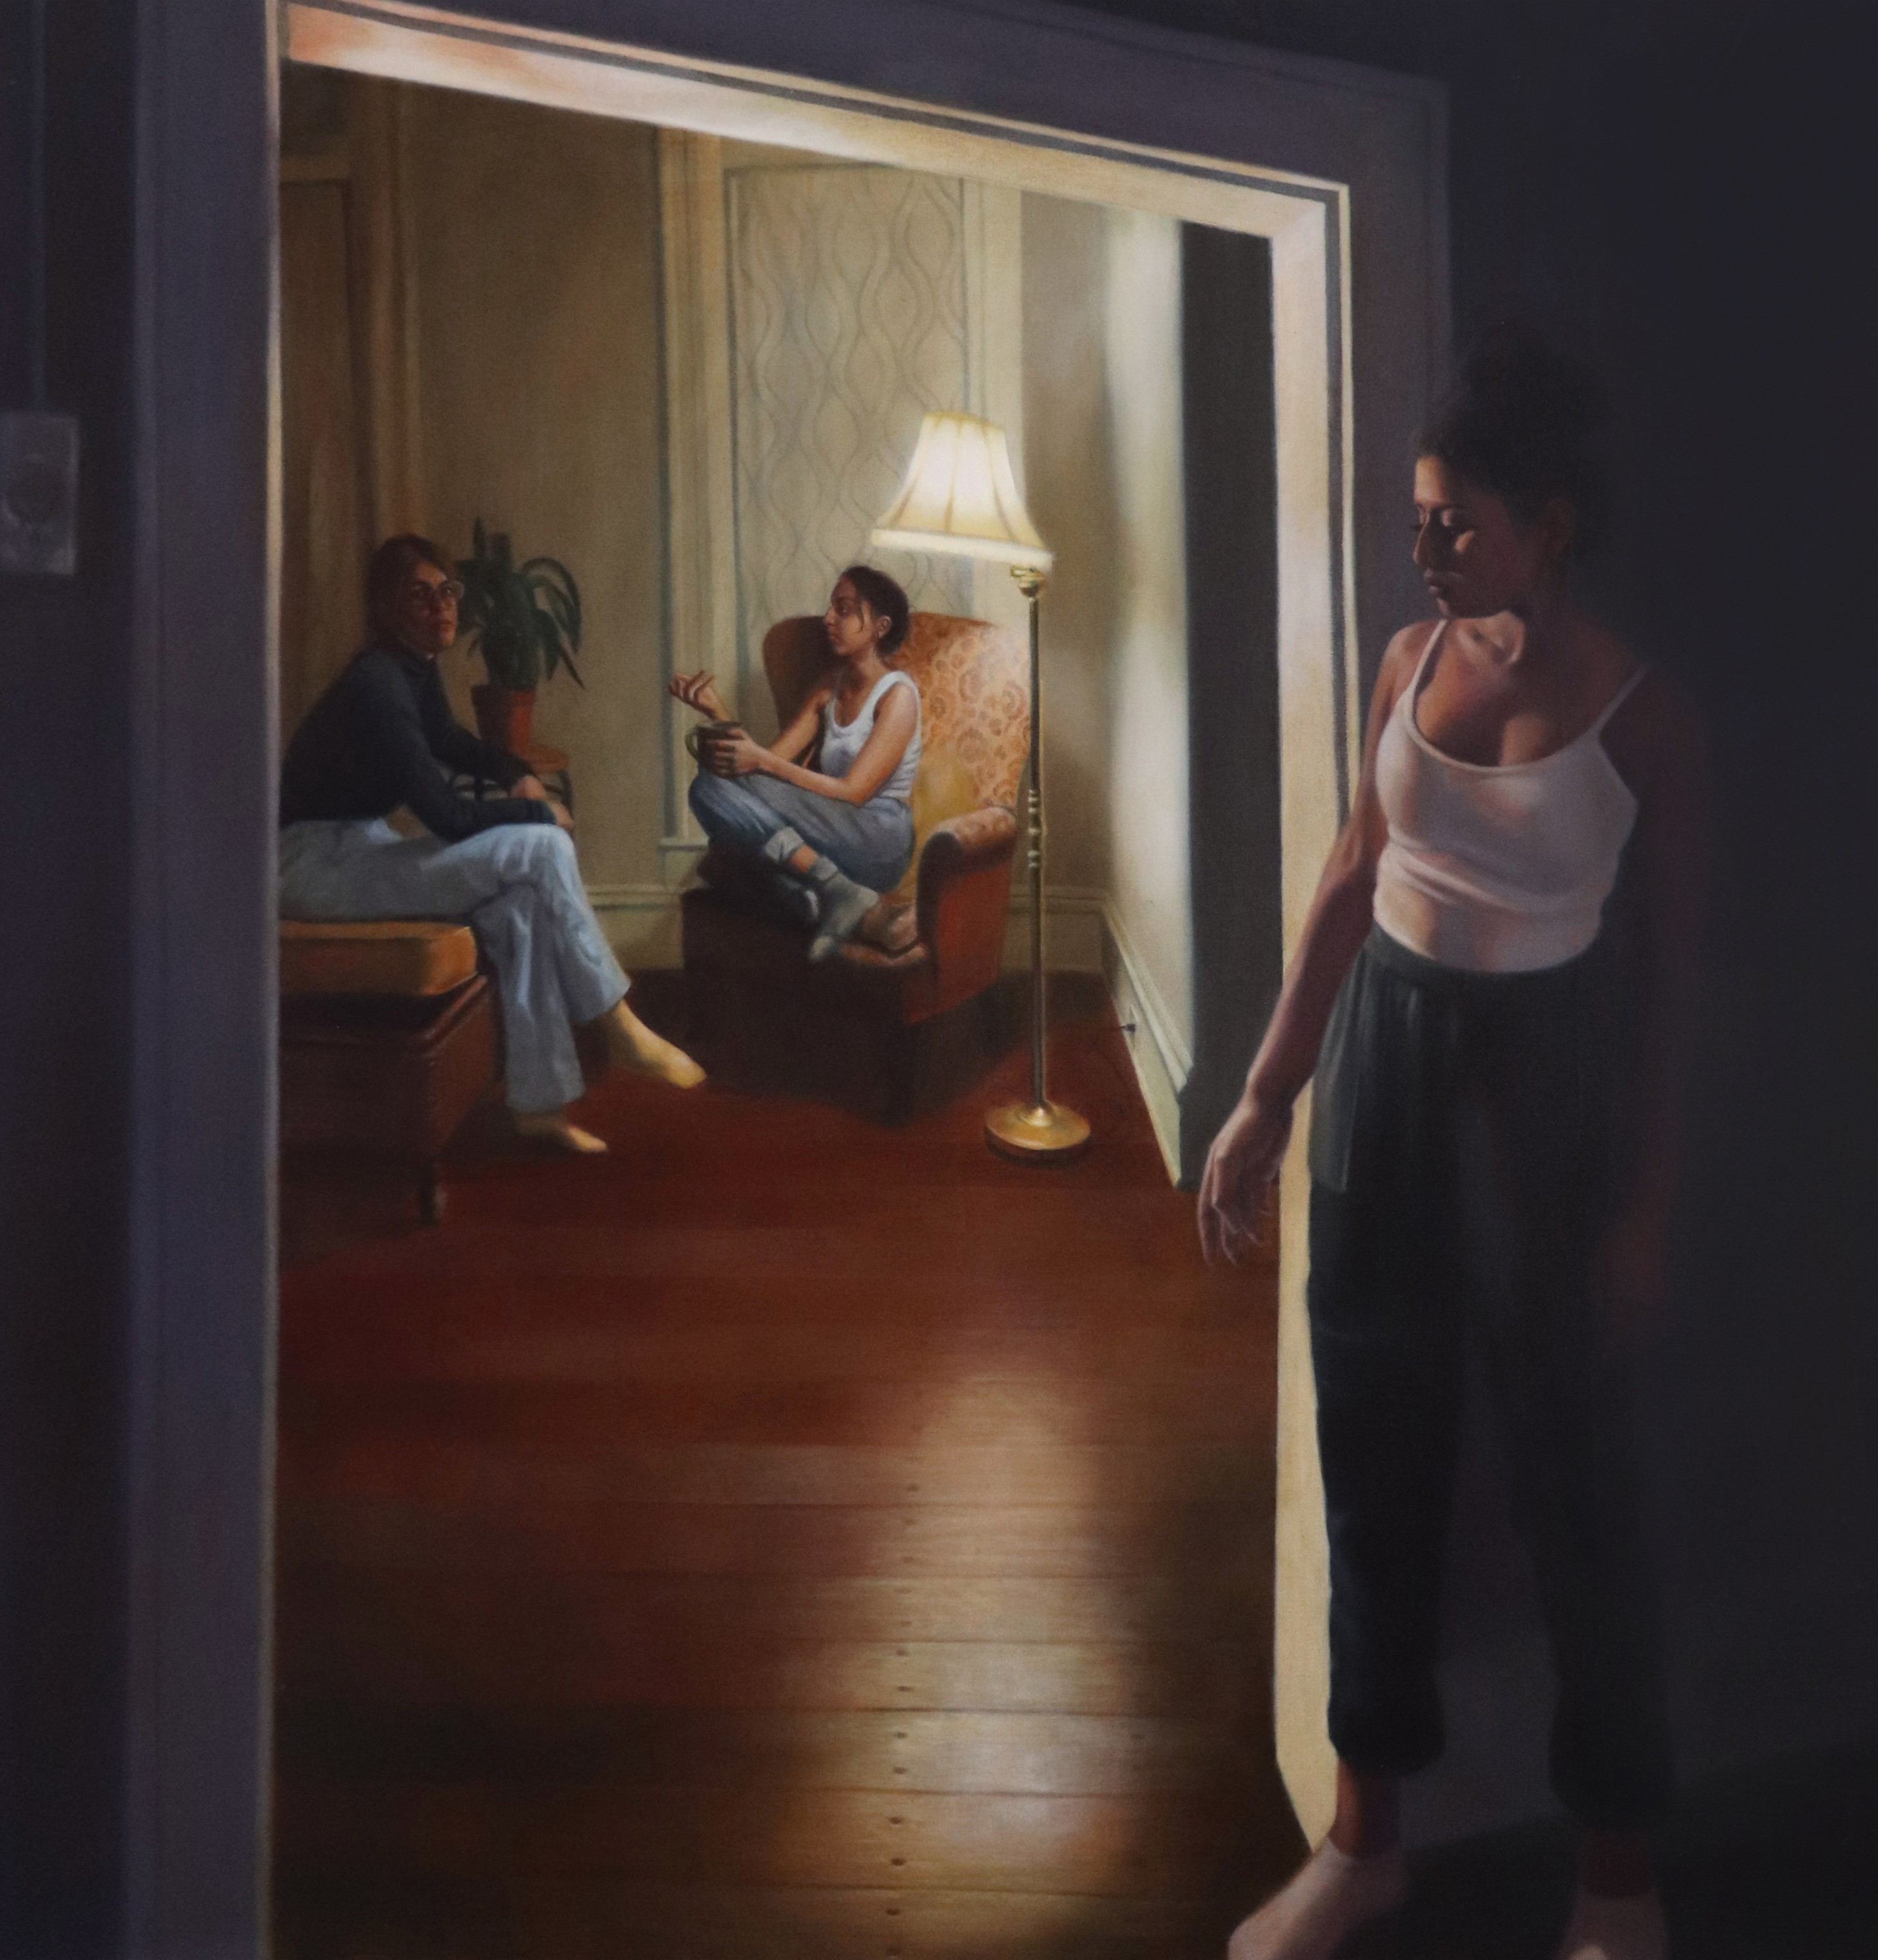 Two figures converse in a warmly lit green room. One of the figures is looking directly at the viewer while the other is speaking to them. Another figure stands hidden behind a doorframe closest to the viewer while listening to their conversation in the d